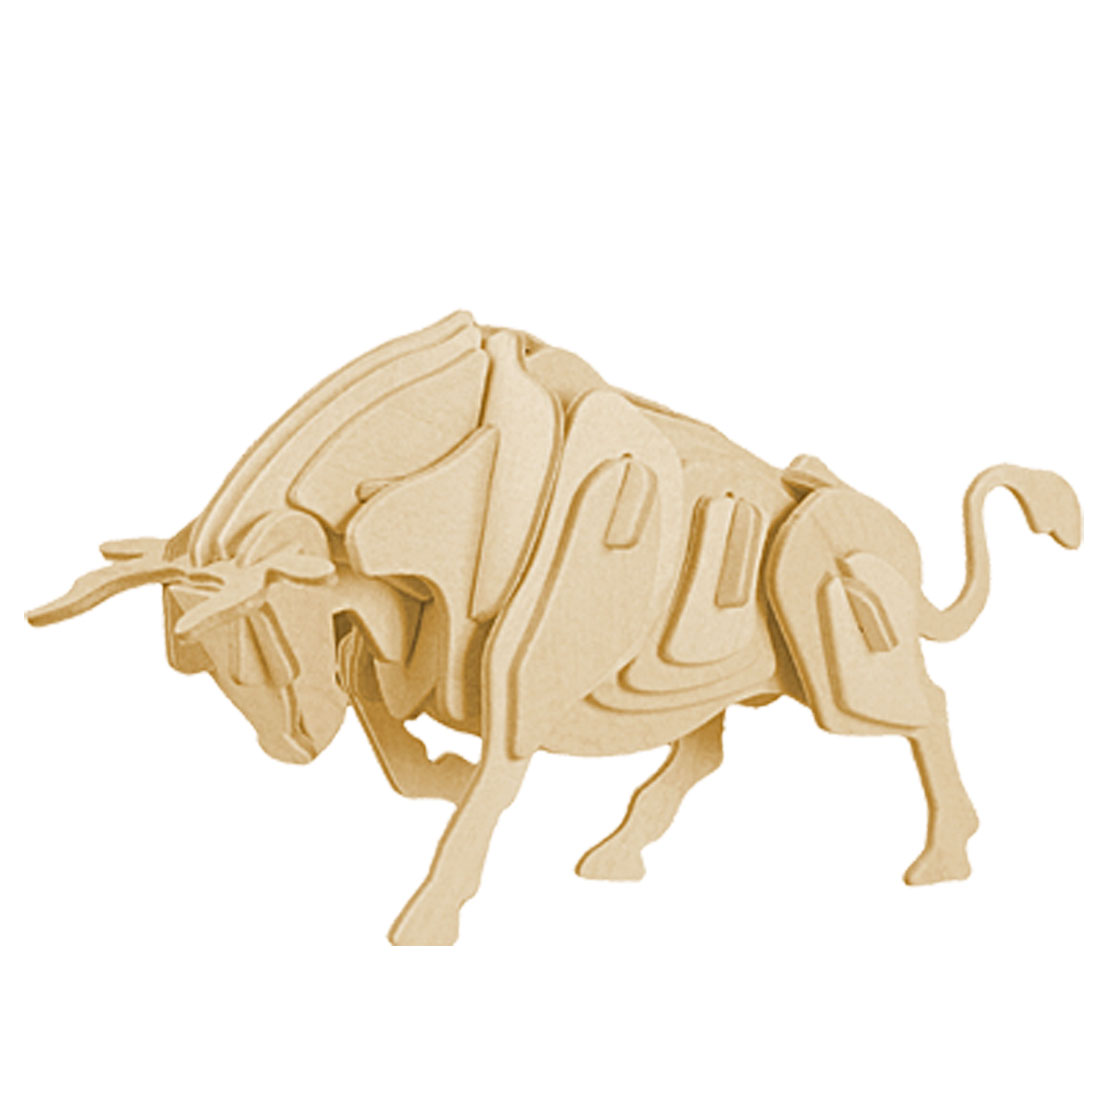 3D Wooden Puzzle Bull Toy Woodcraft Construction Kit